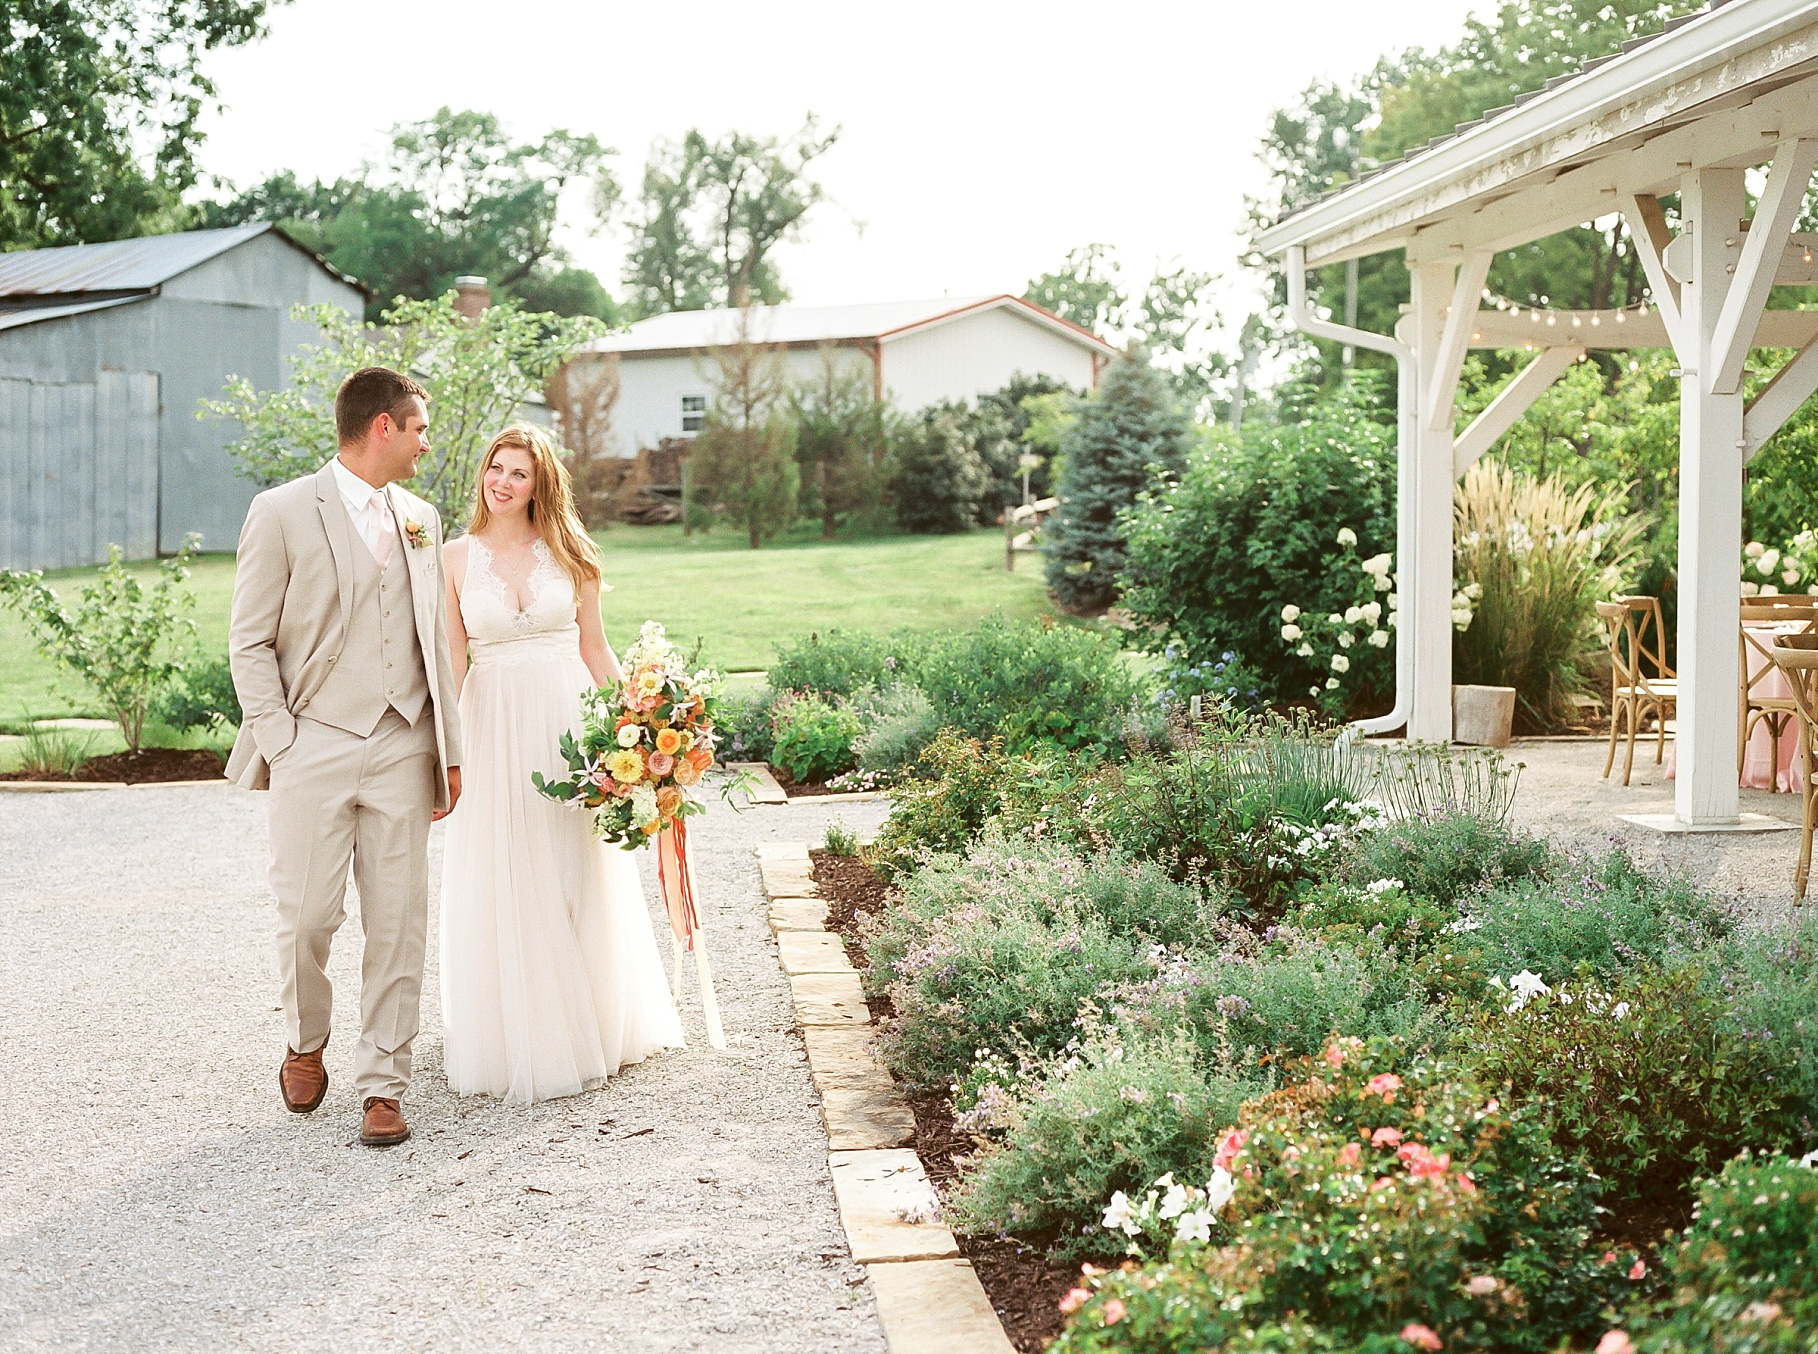 Late Summer Wedding With Pastel Toned Soiree at Blue Bell Farm by Kelsi Kliethermes Photography Best Columbia Missouri Wedding Photographer_0012.jpg